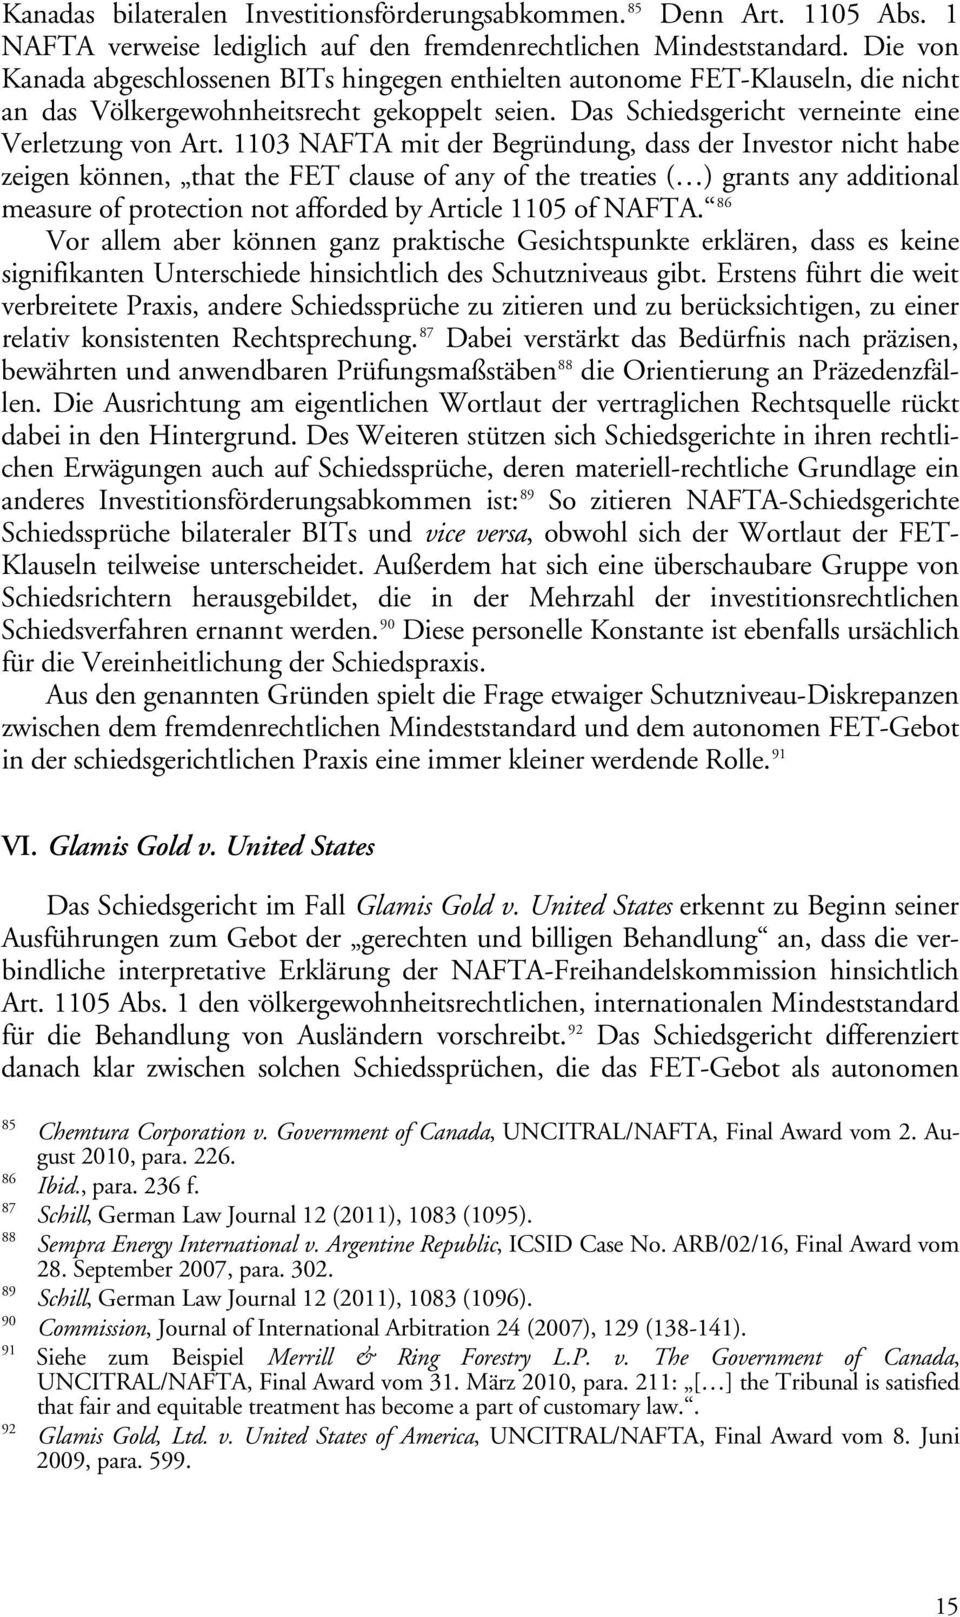 1103 NAFTA mit der Begründung, dass der Investor nicht habe zeigen können, that the FET clause of any of the treaties ( ) grants any additional measure of protection not afforded by Article 1105 of